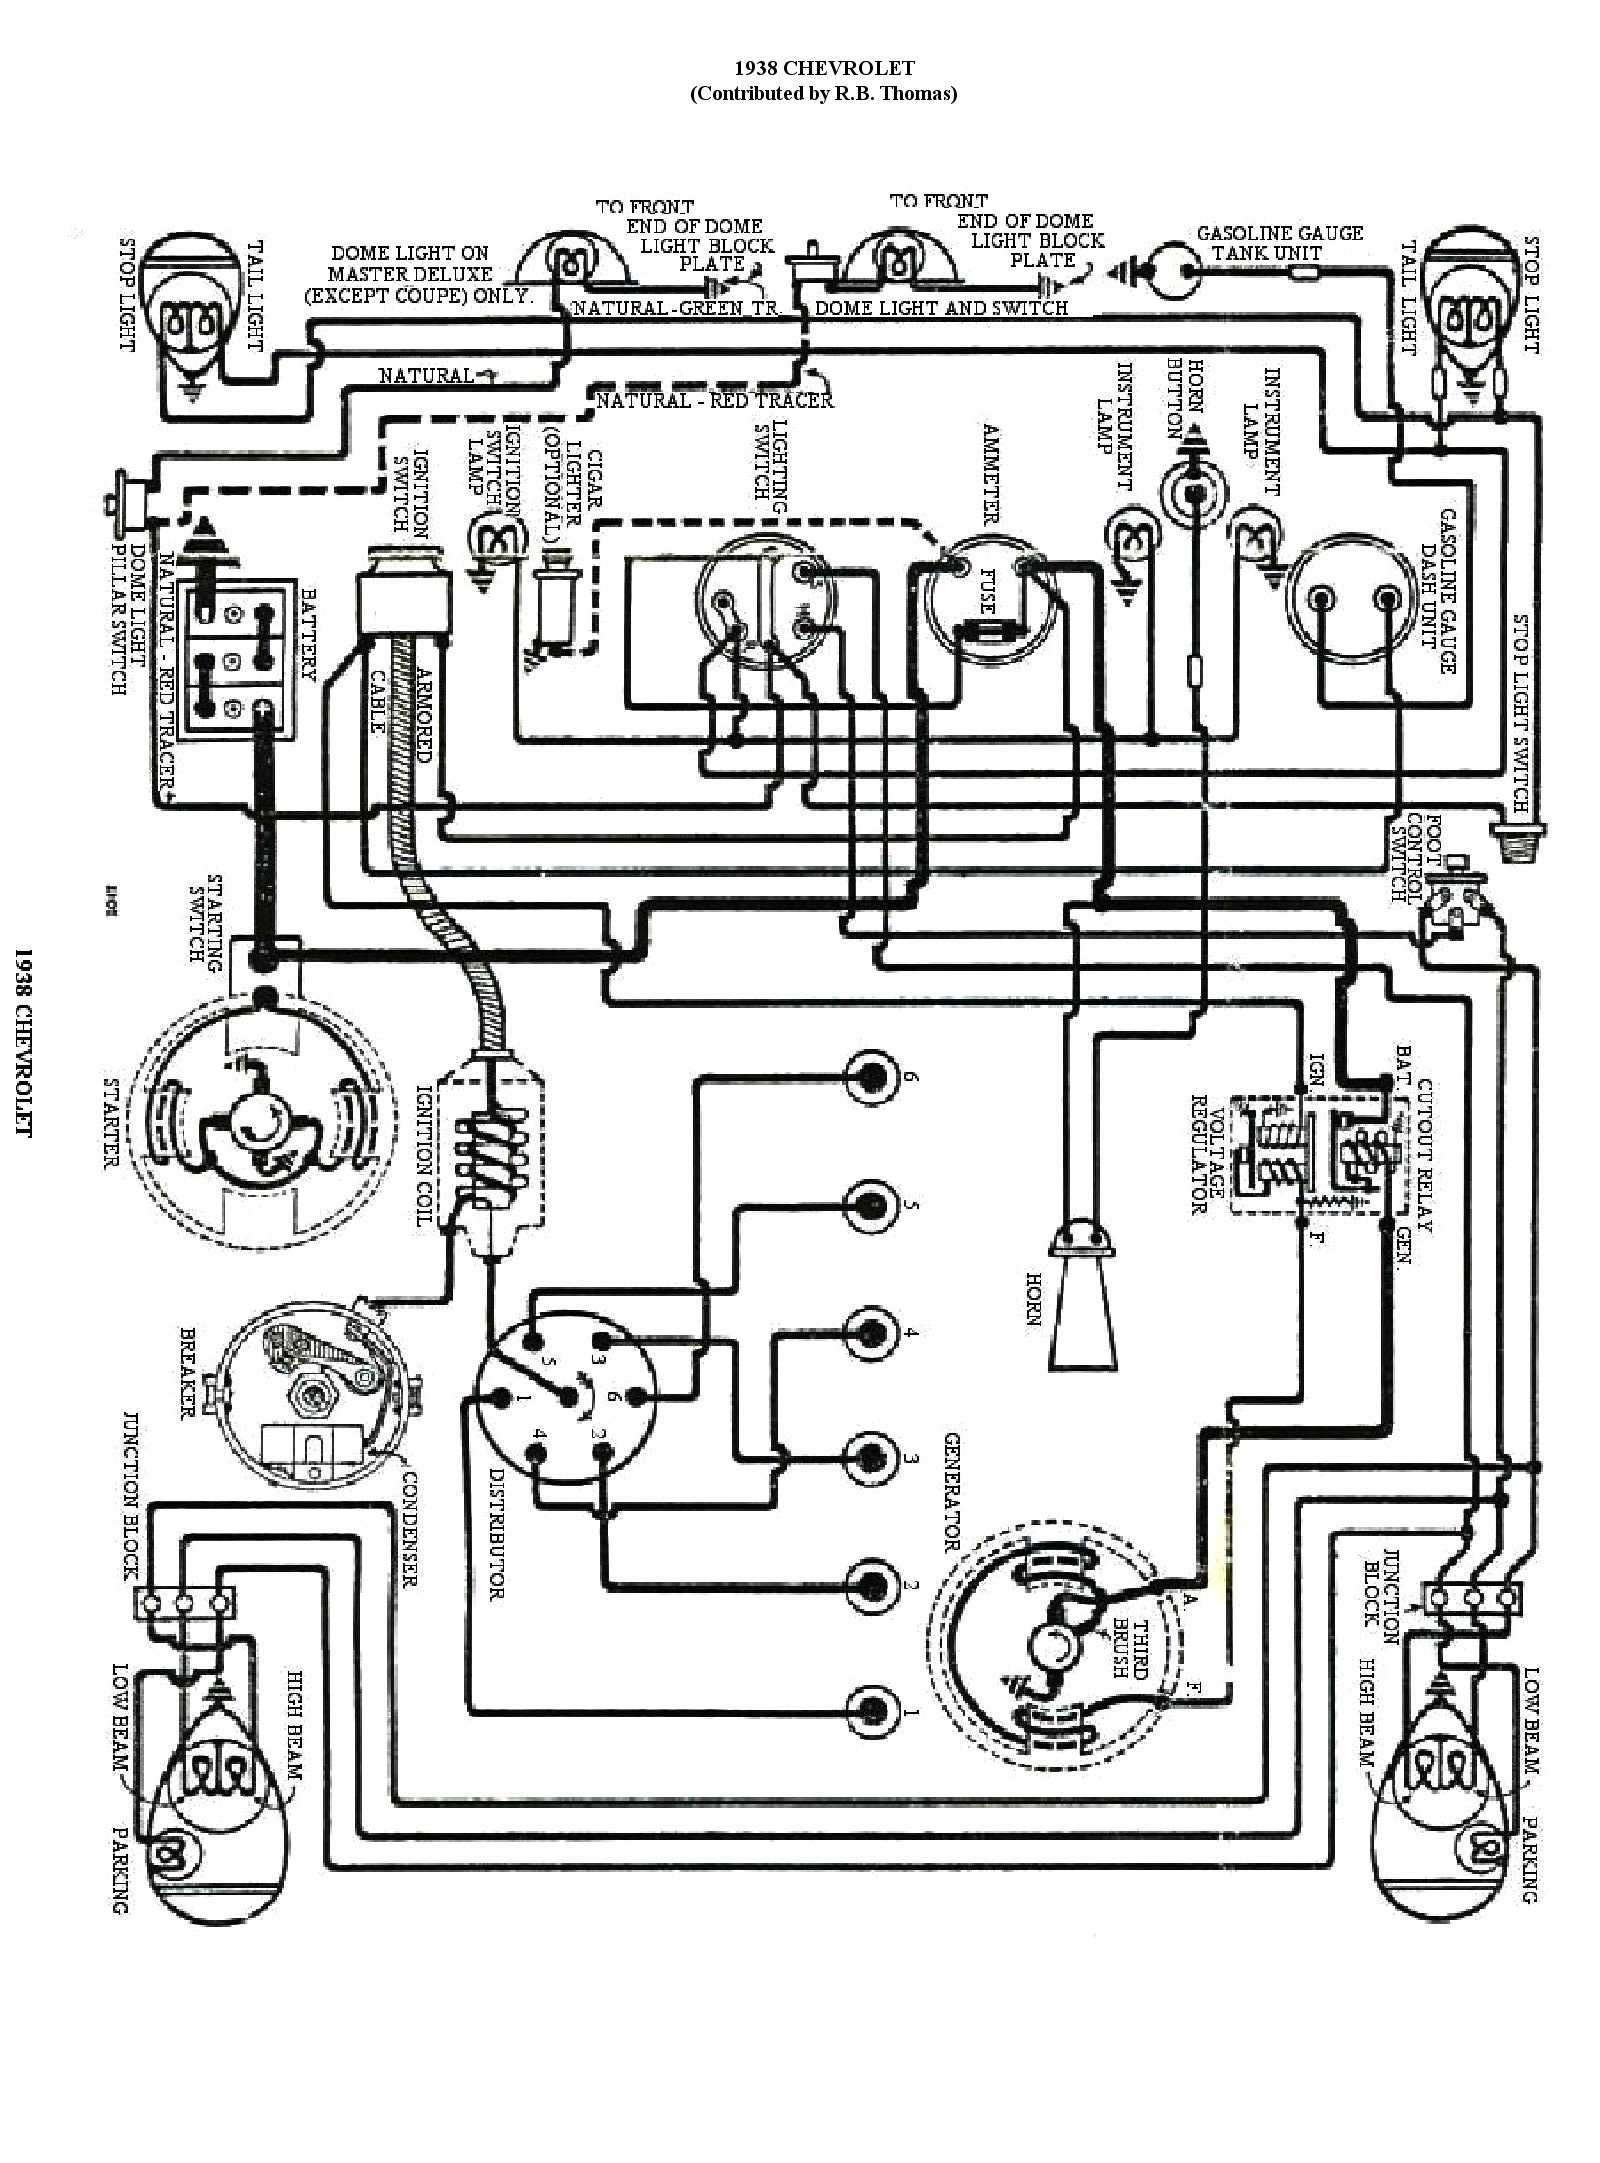 Diagram  1976 Dodge Sportsman Rv Wiring Diagram Full Version Hd Quality Wiring Diagram